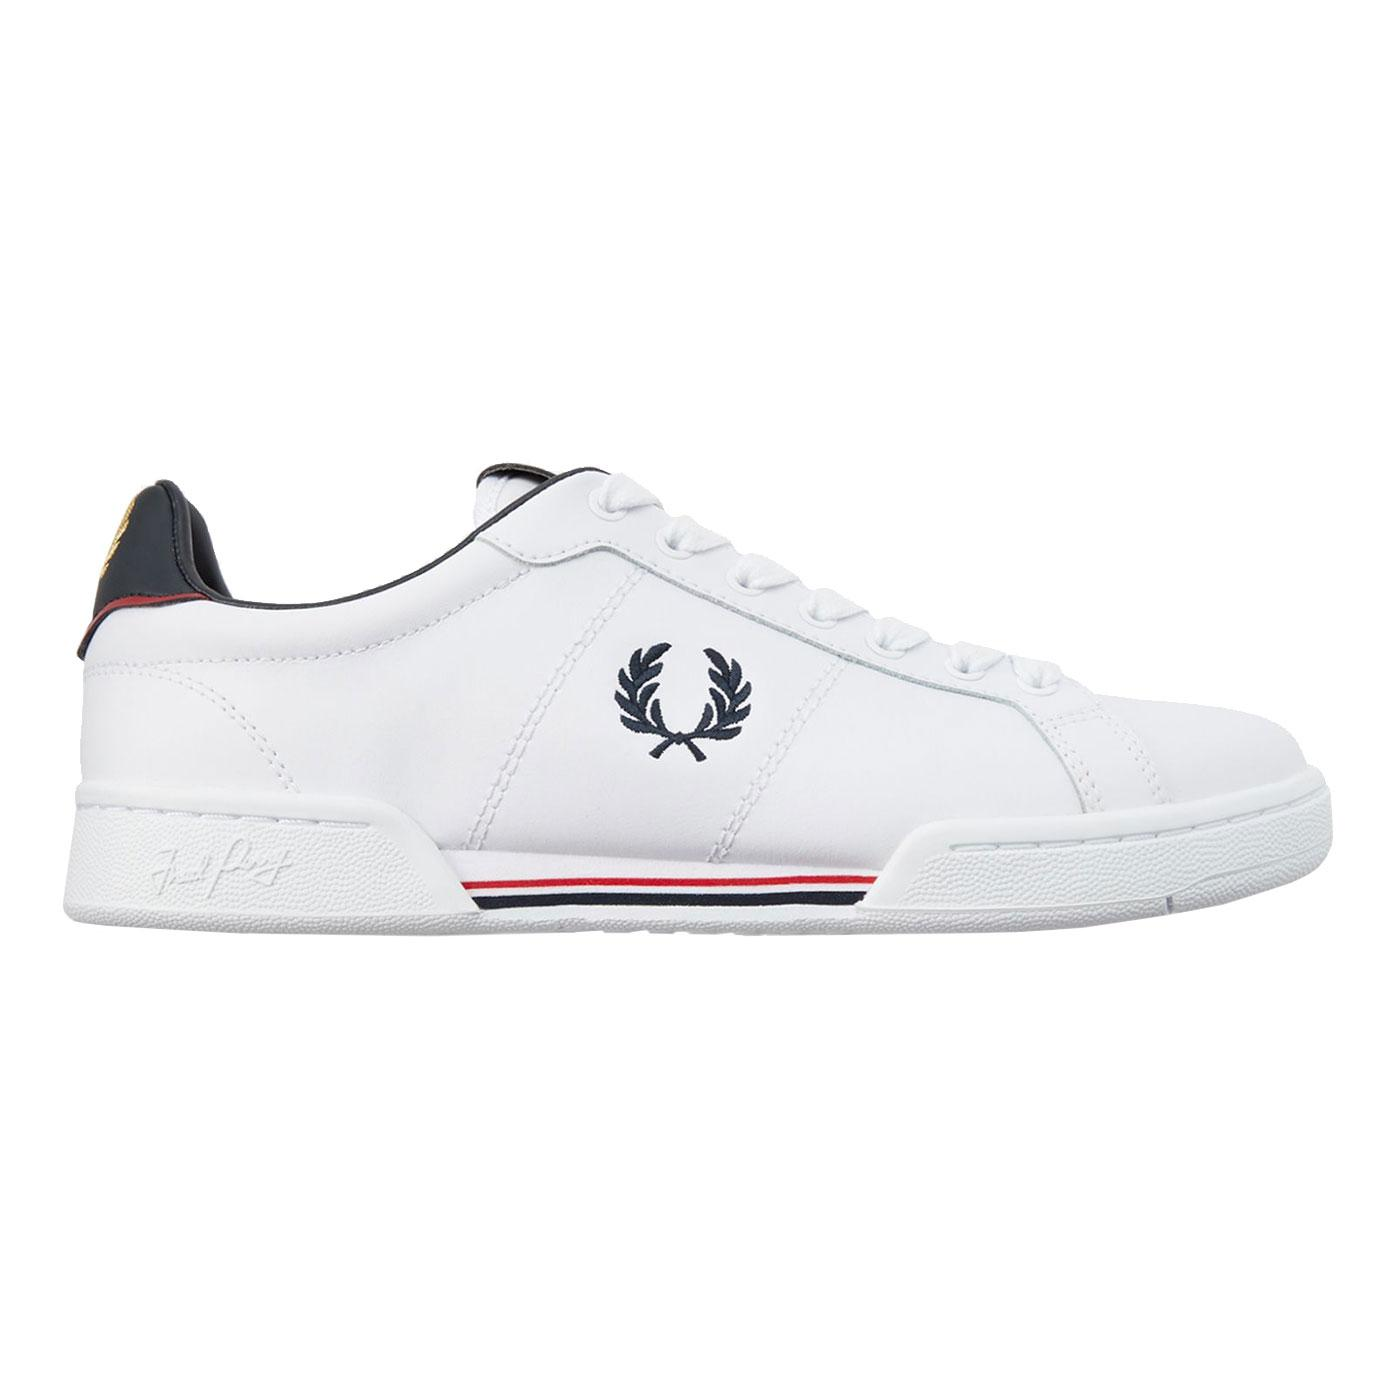 FRED PERRY B722 Leather Retro Tennis Trainers